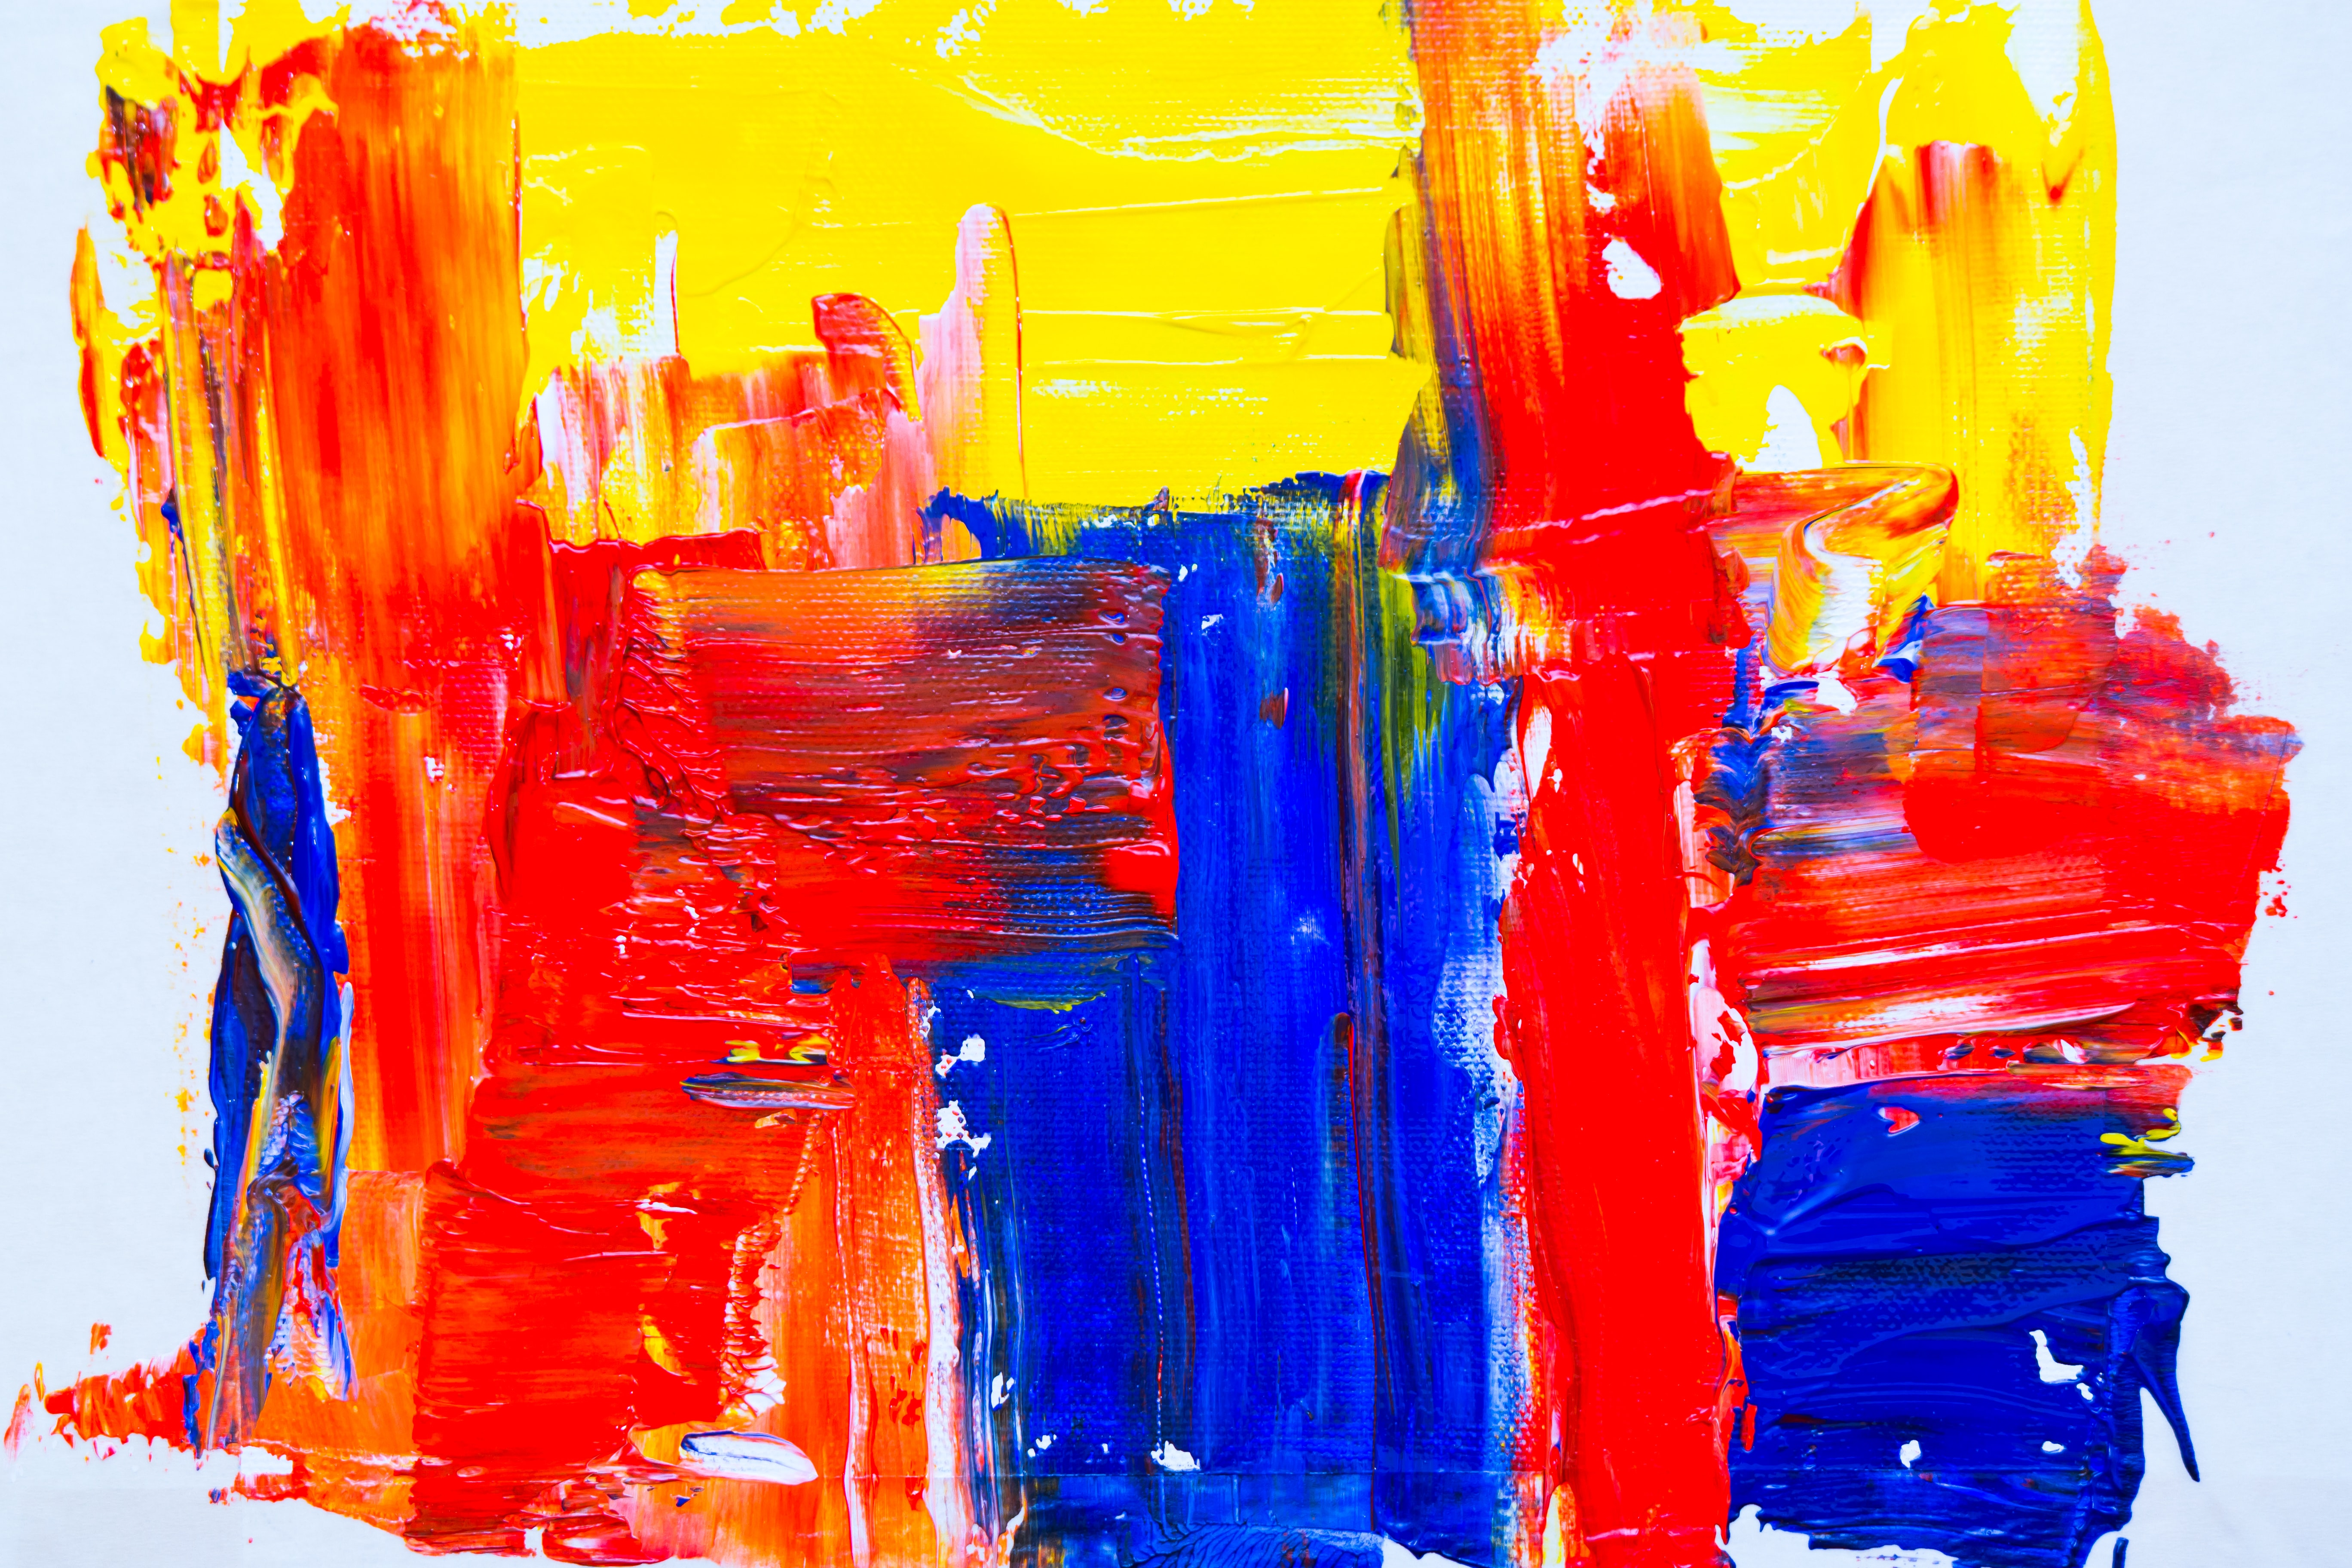 blue, red, and yellow paint illustration